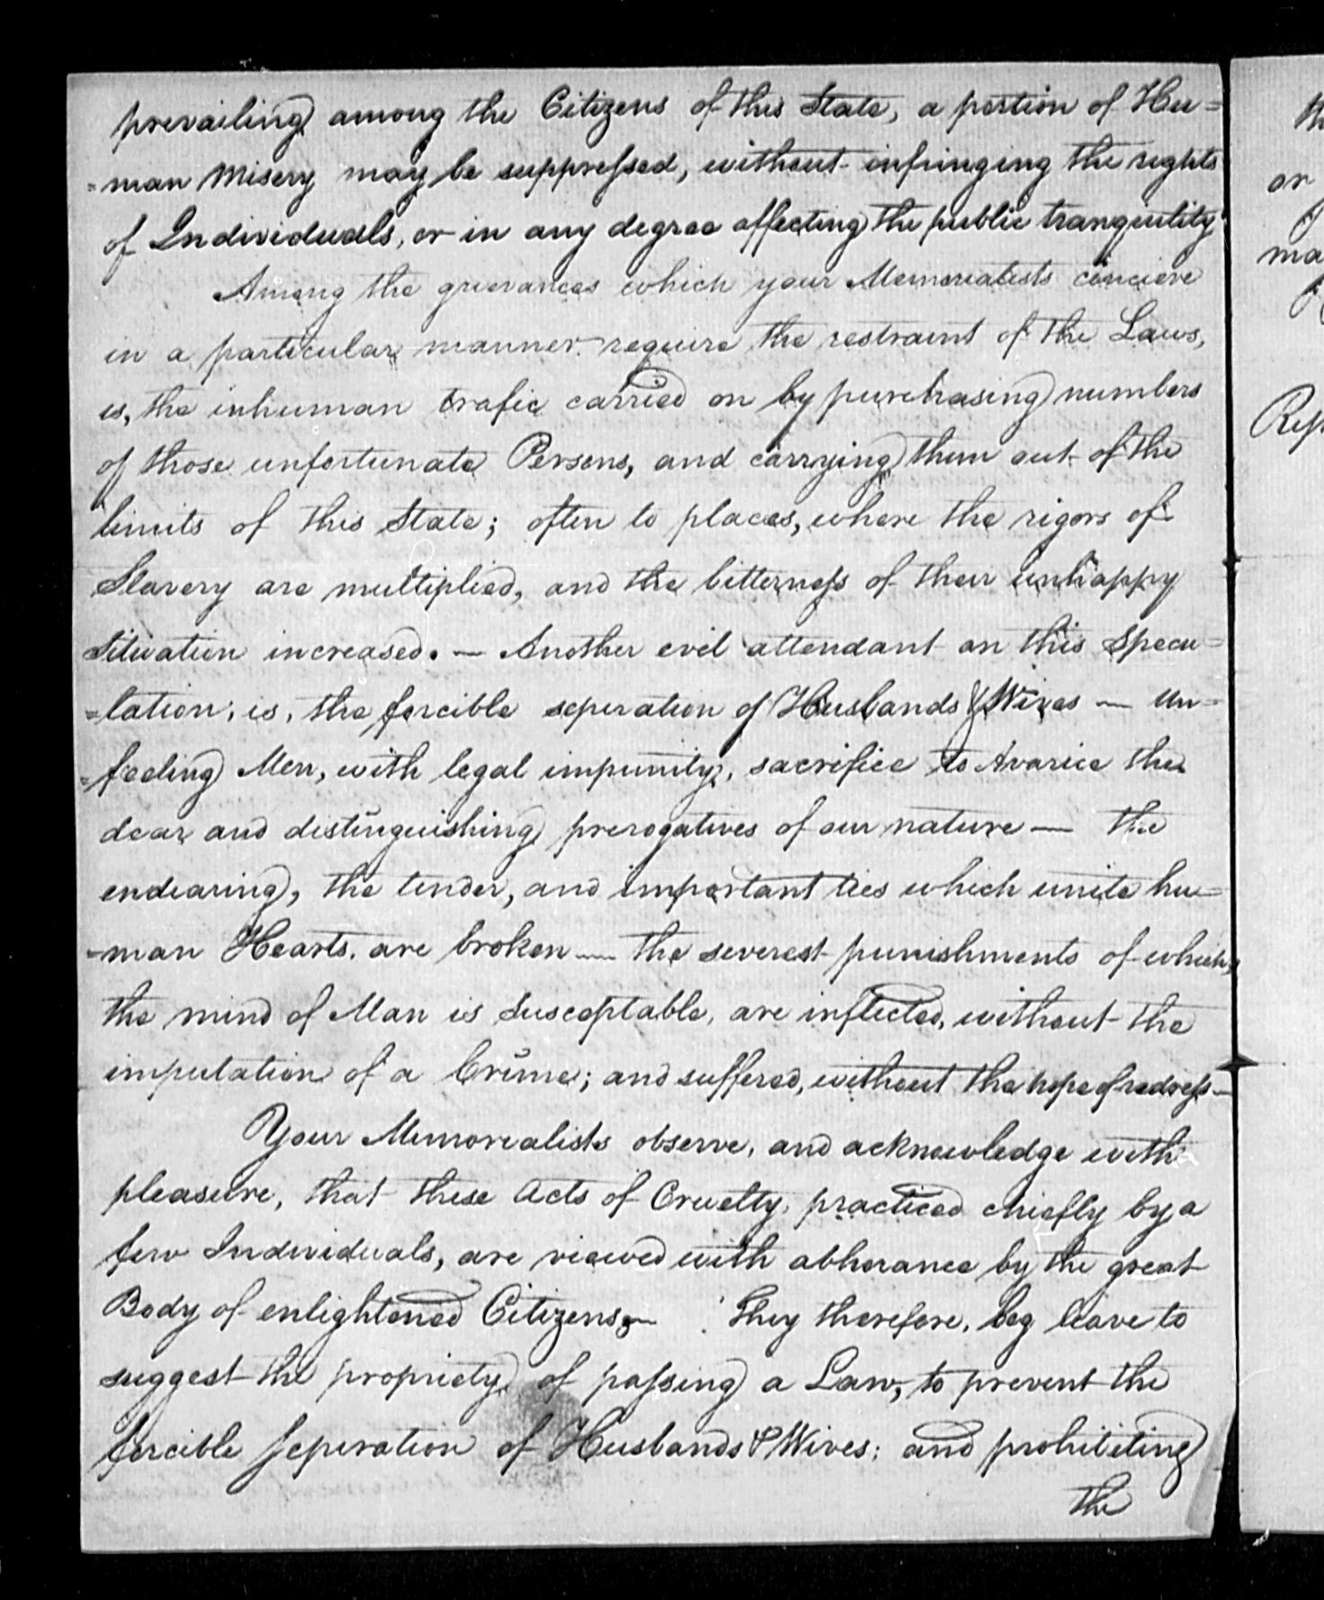 December 17, 1802, Miscellaneous, Society of Friend, in opposition to slavery.